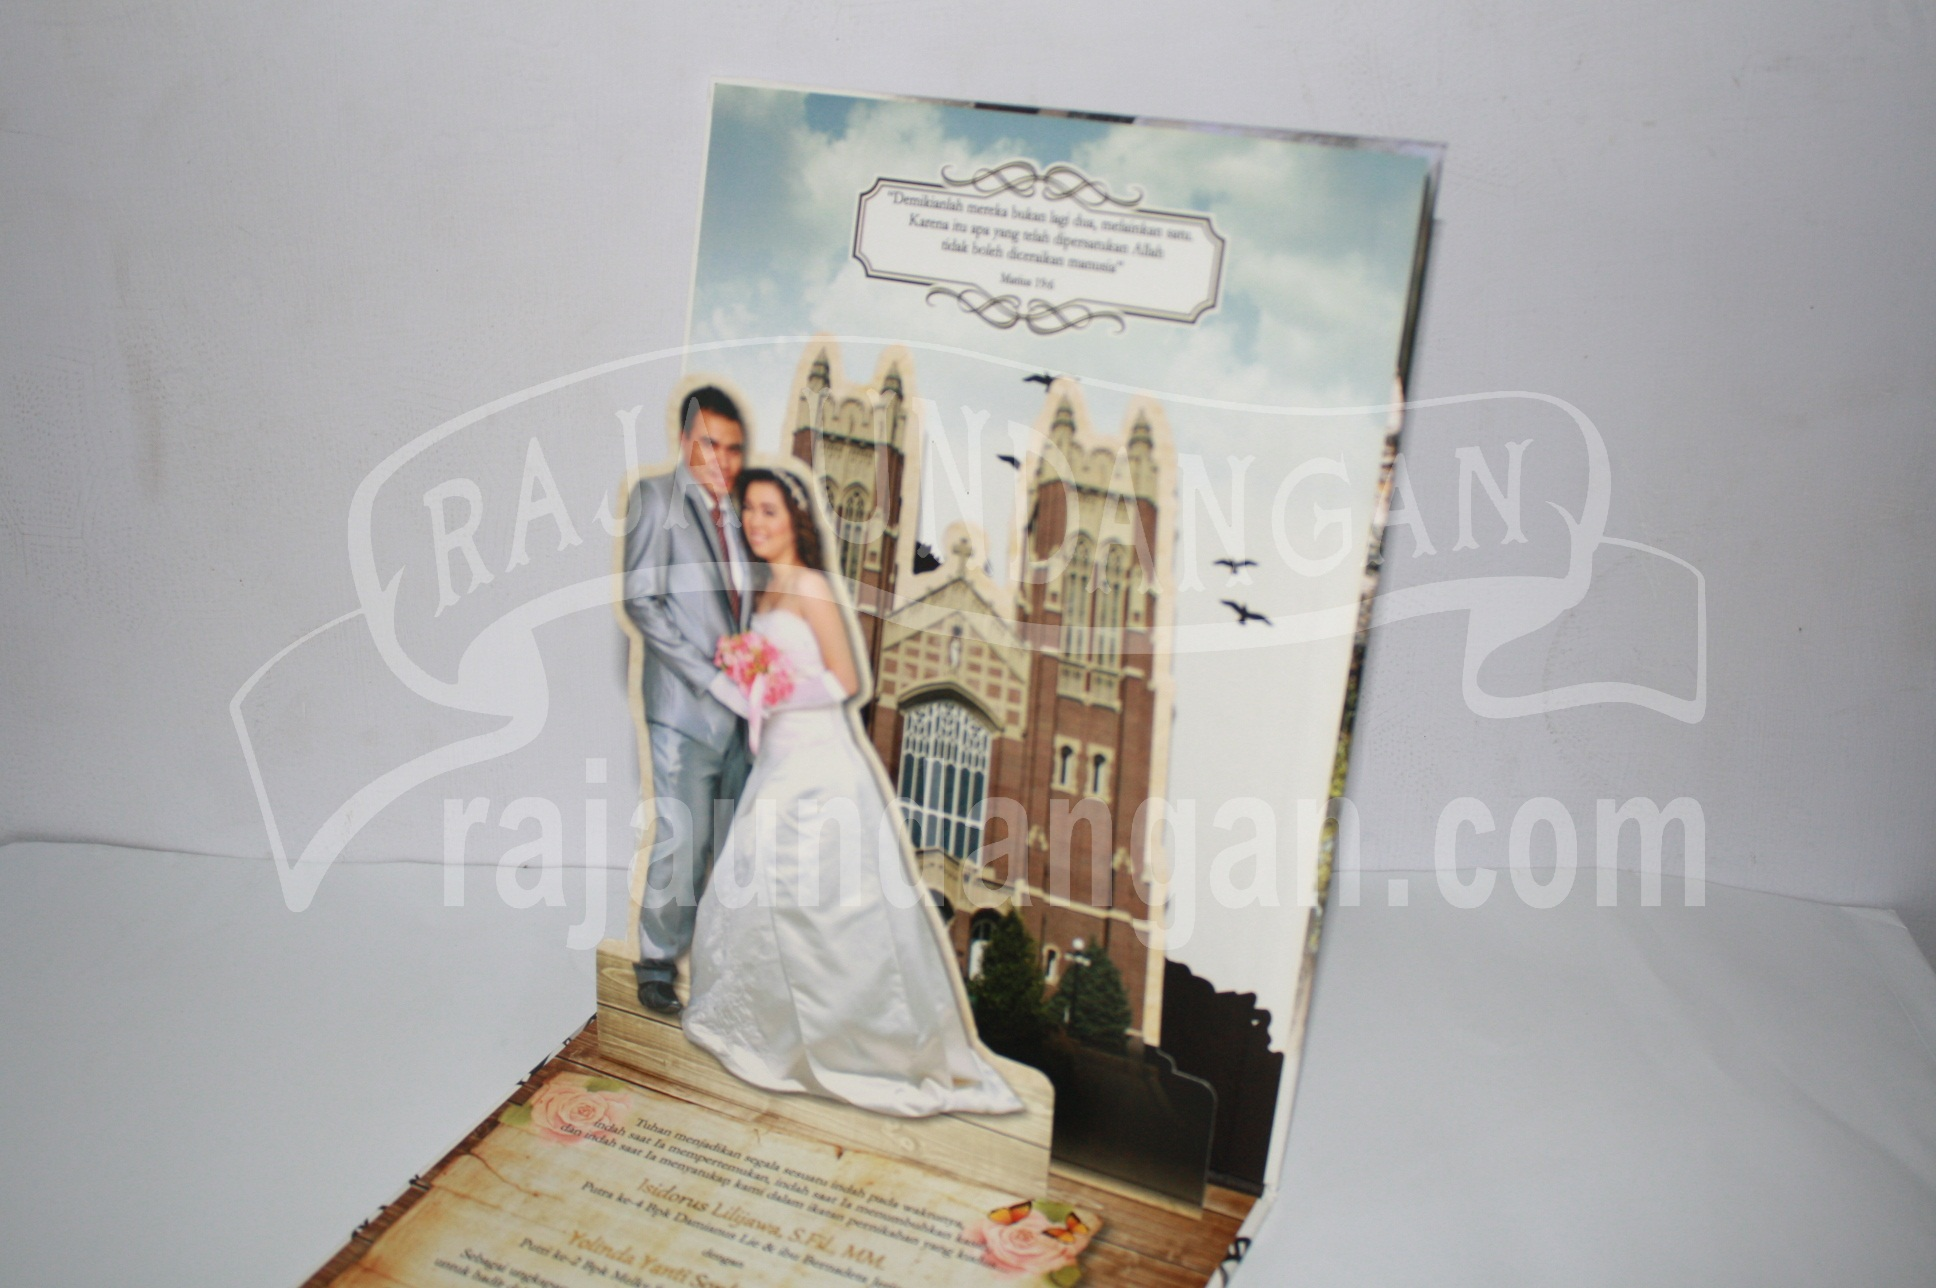 Undangan Pernikahan Hardcover Pop Up Iso dan Yanti EDC 45 3 - Cetak Wedding Invitations Unik di Babakan Jerawat